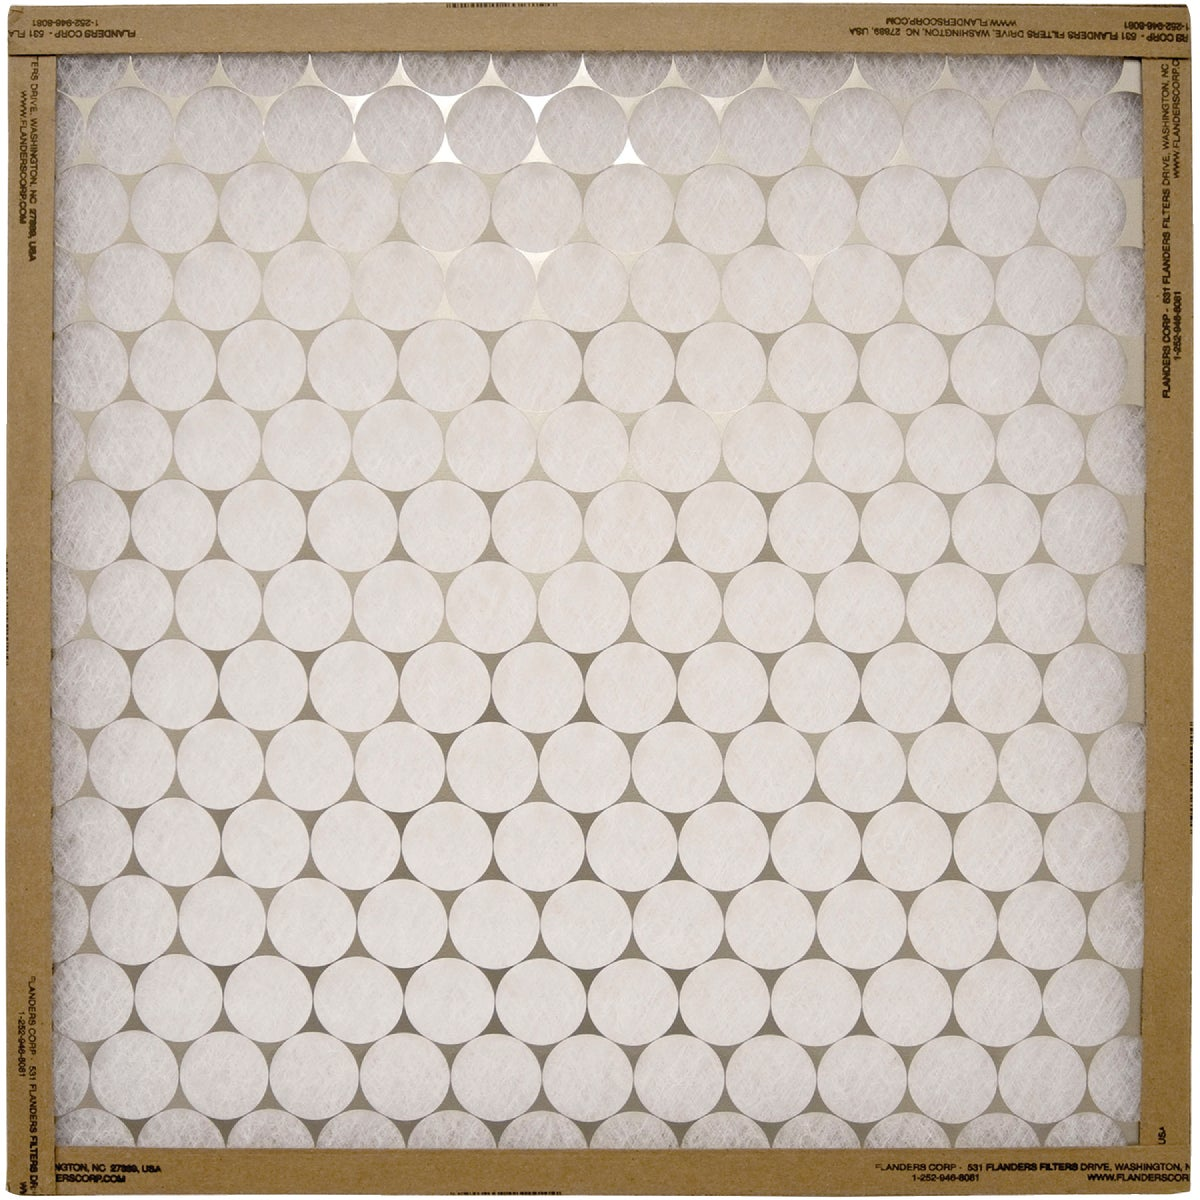 10X20 FURNACE FILTER - 10255.011020 by Flanders Corp